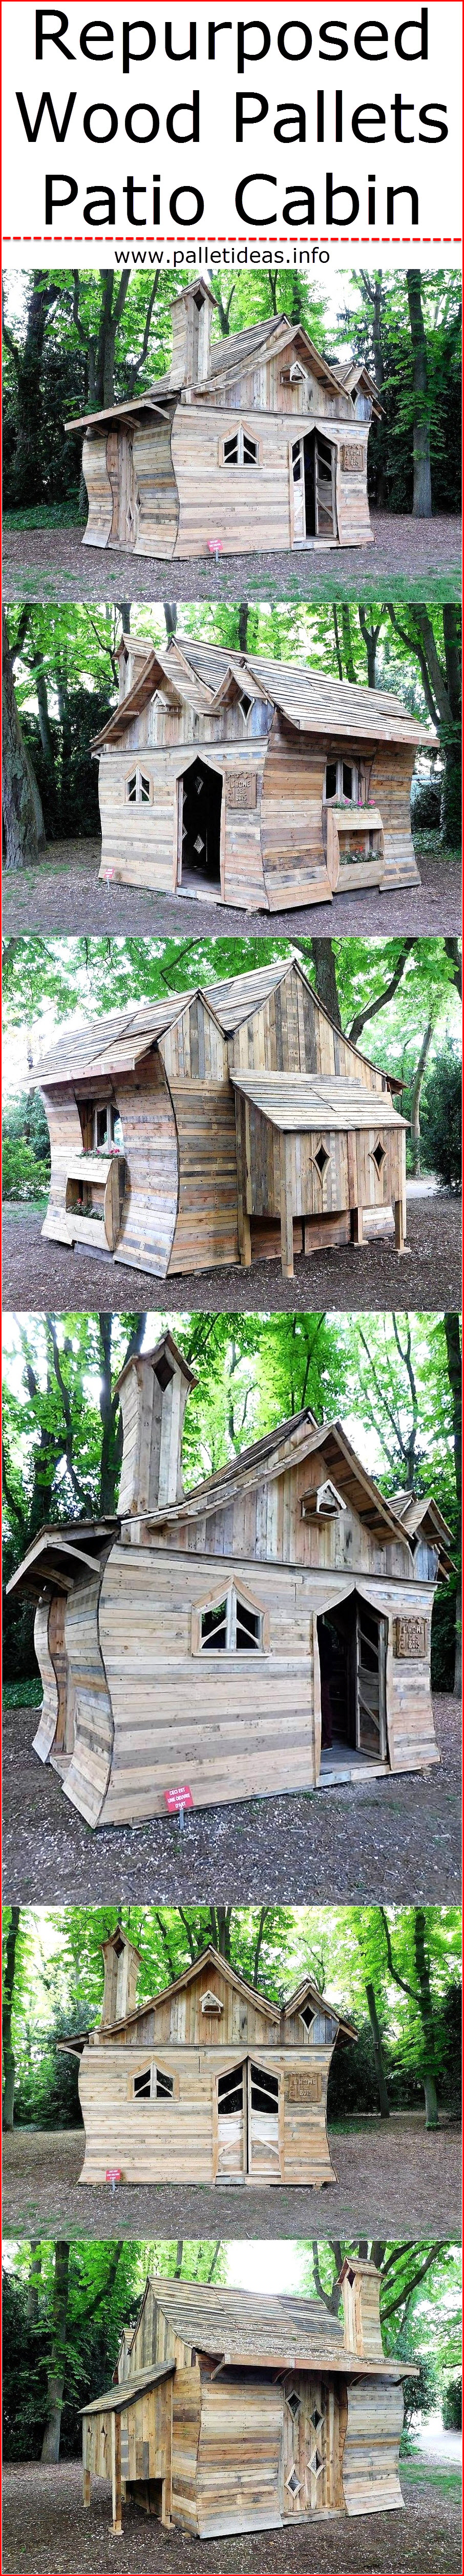 repurposed-wood-pallets-patio-cabin